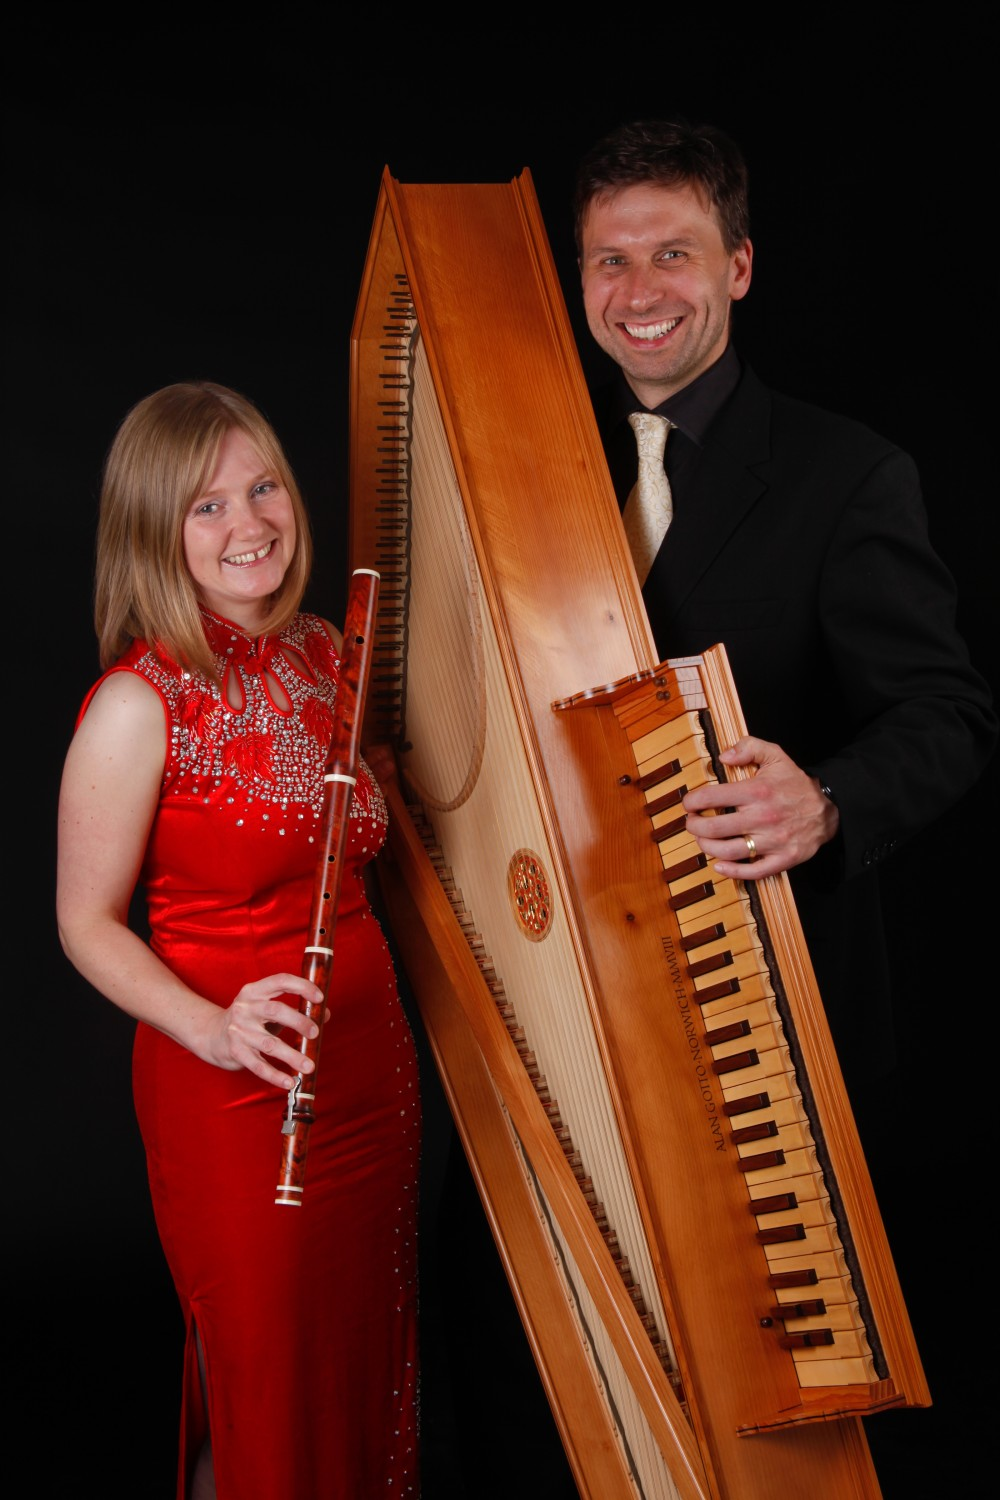 Studio - Passacaglia EnsembleRobin Bigwood and Annabel Knight-Black Background